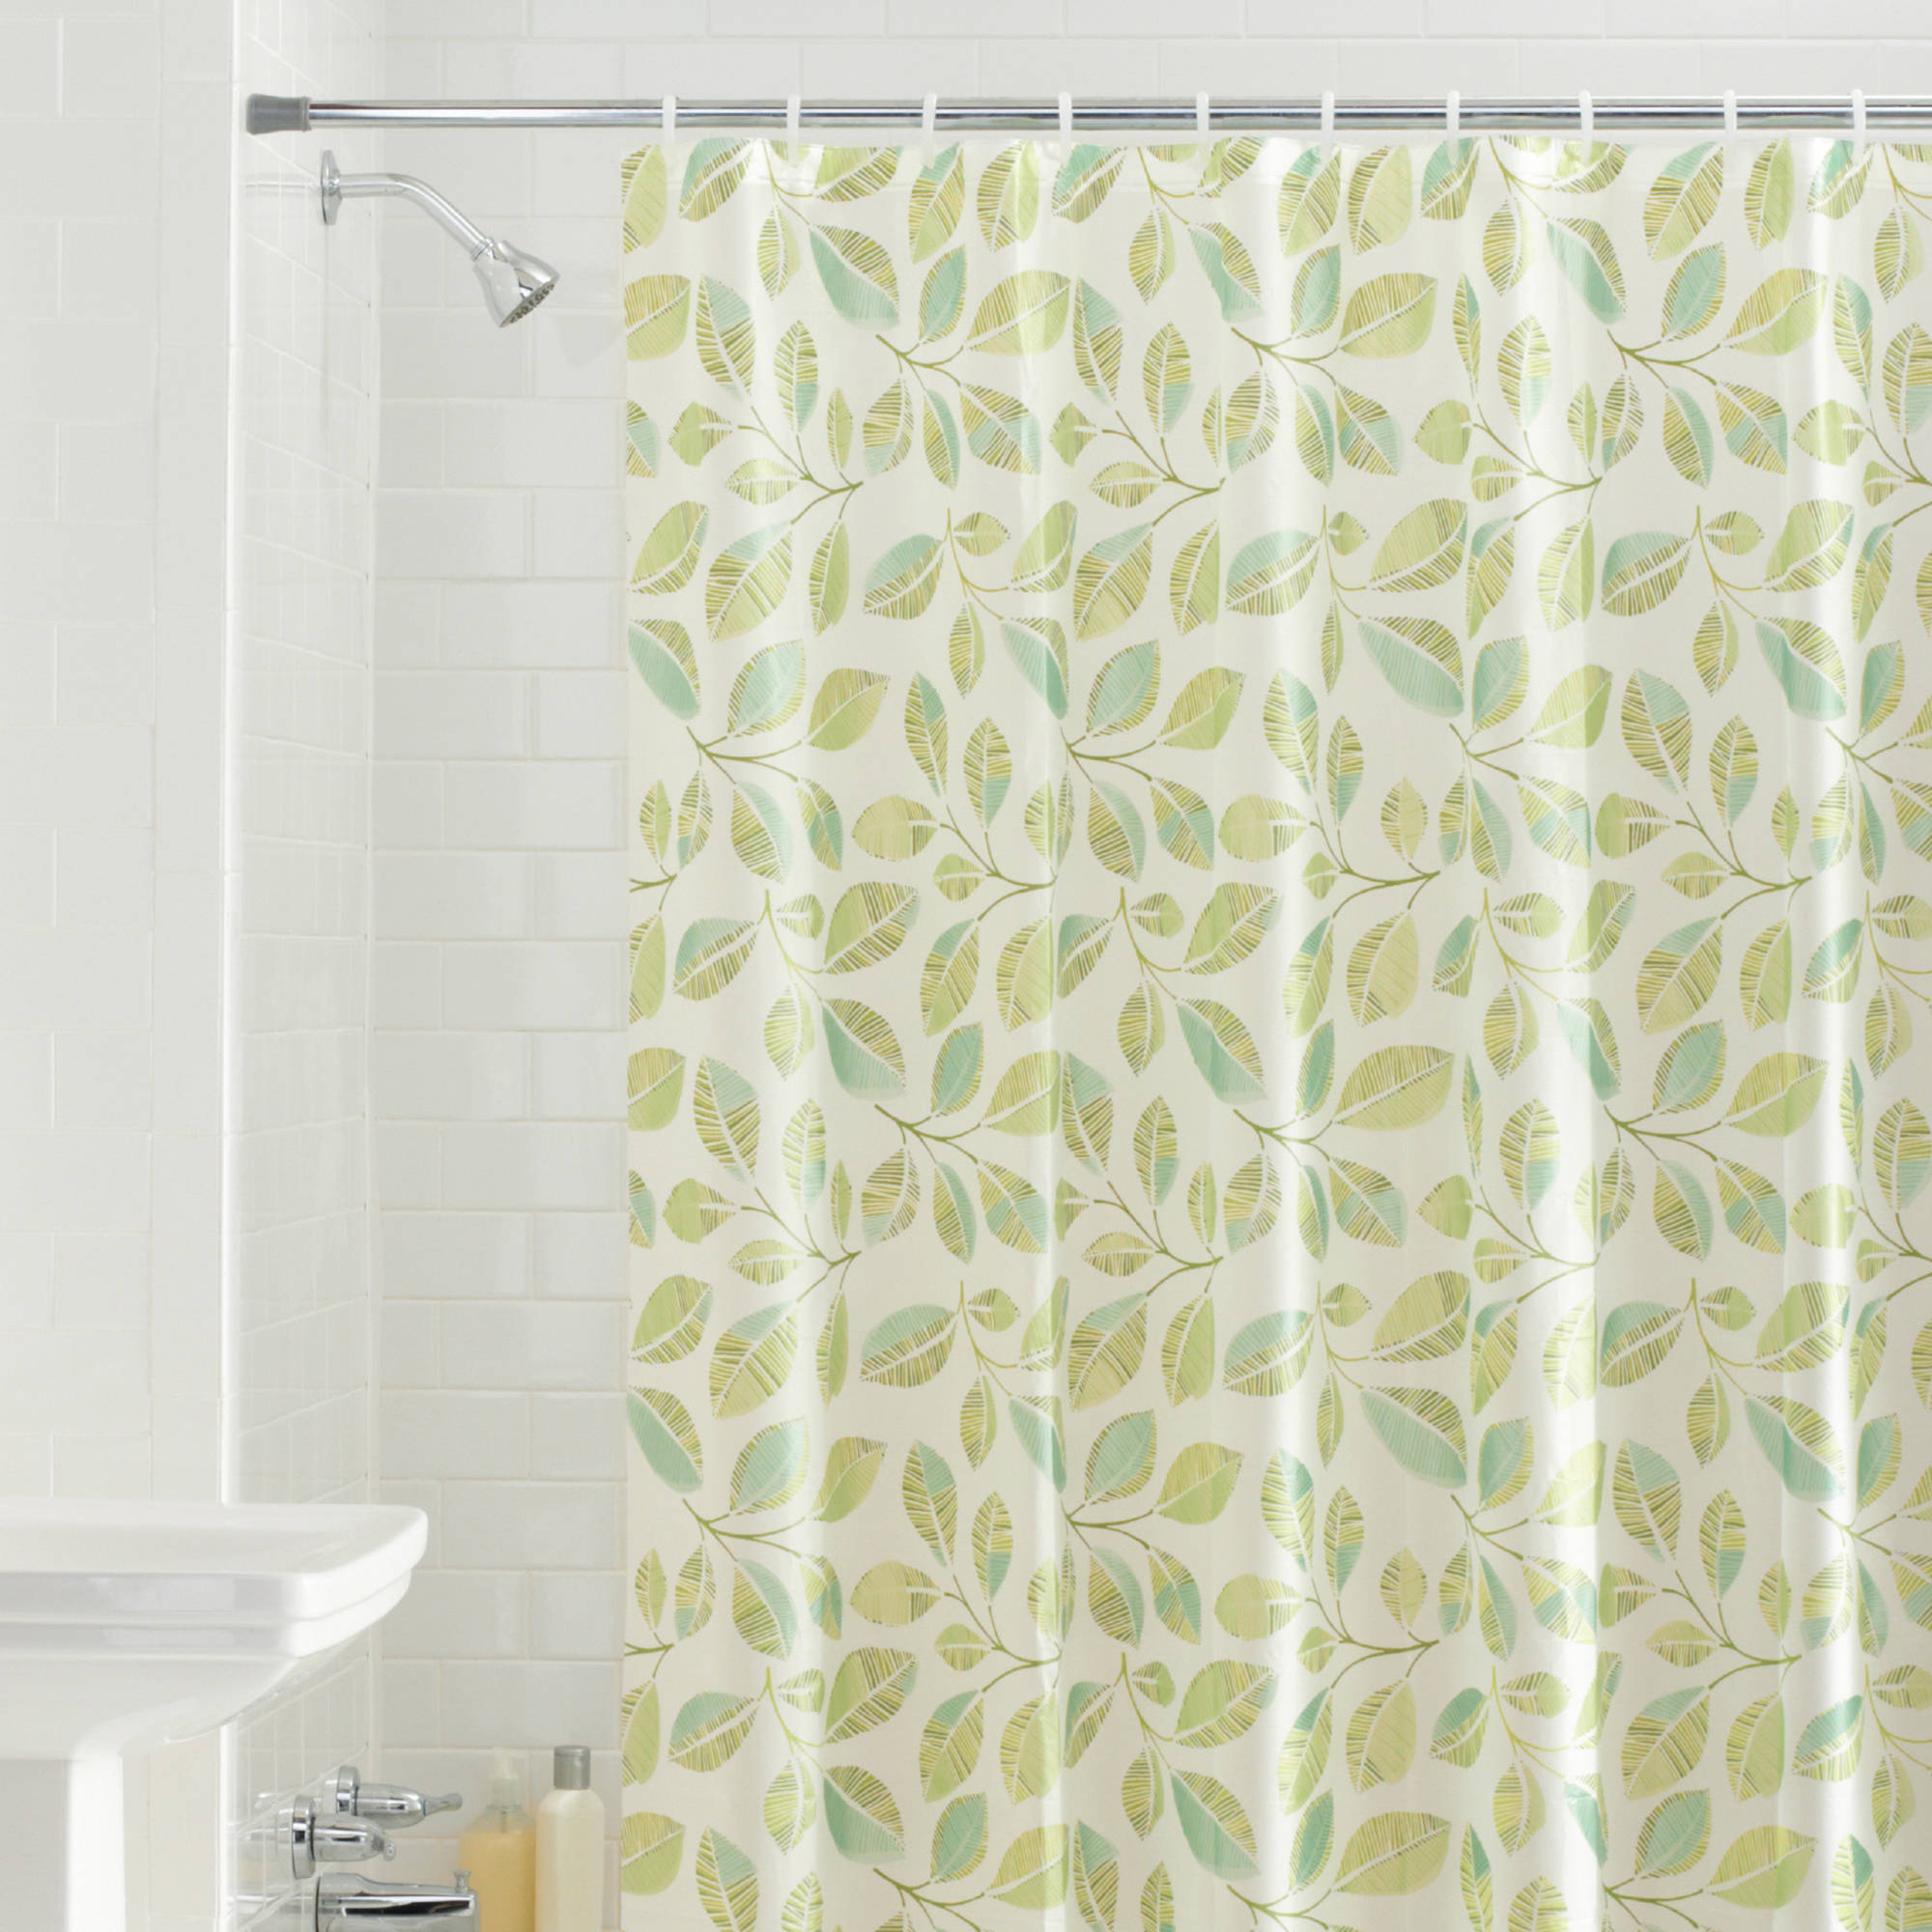 Mainstays Fiji Leaves PEVA Shower Curtain Green